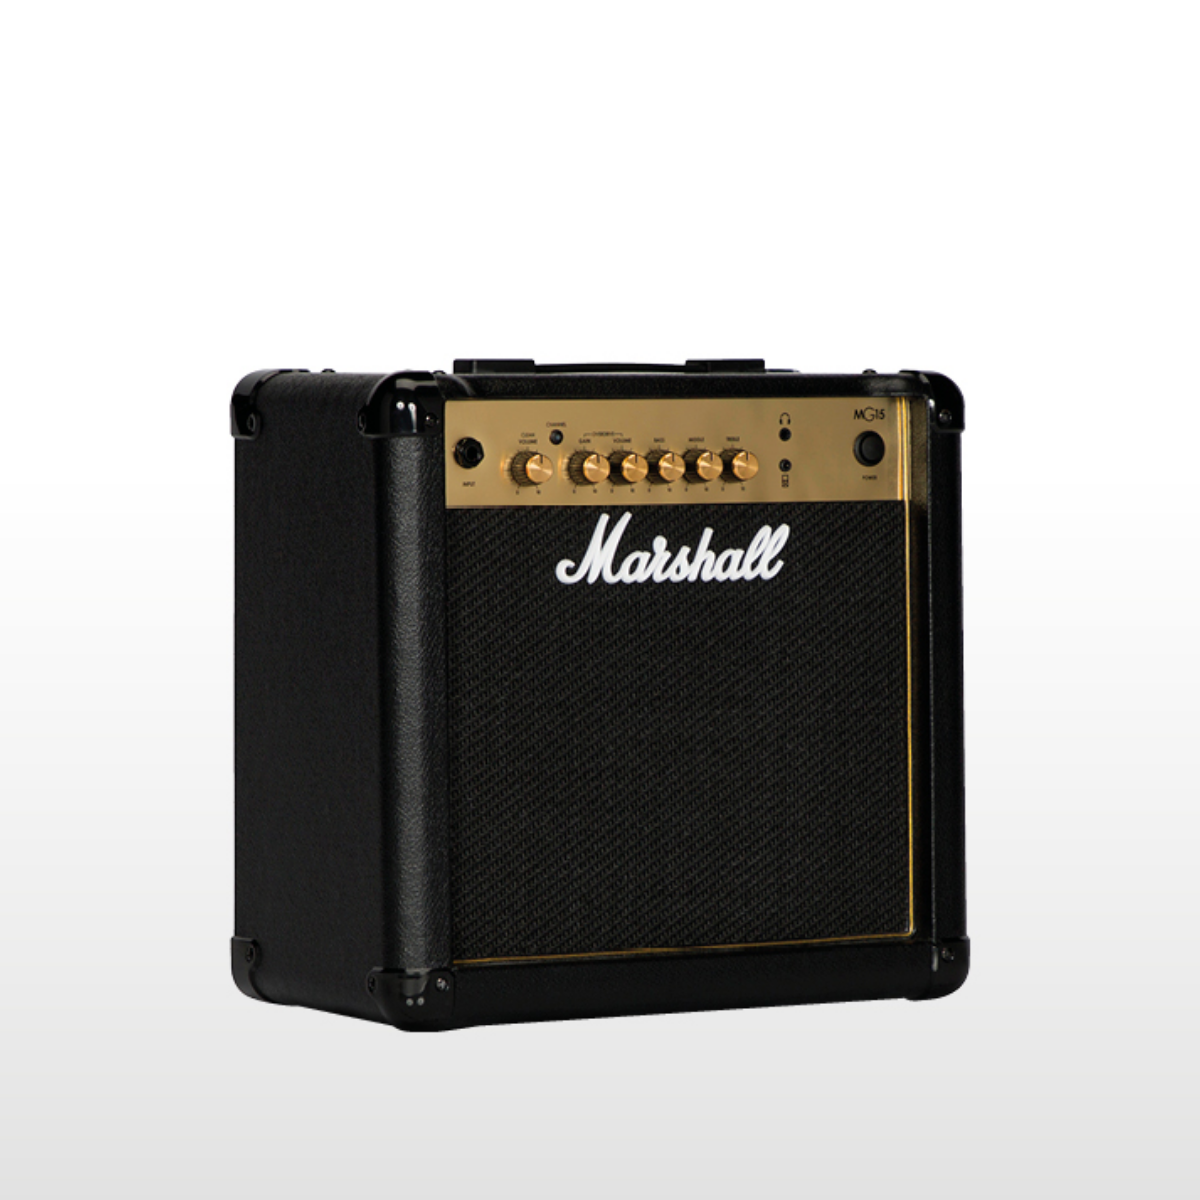 COMBO GUITAR 15W 2 CHANNEL MG15